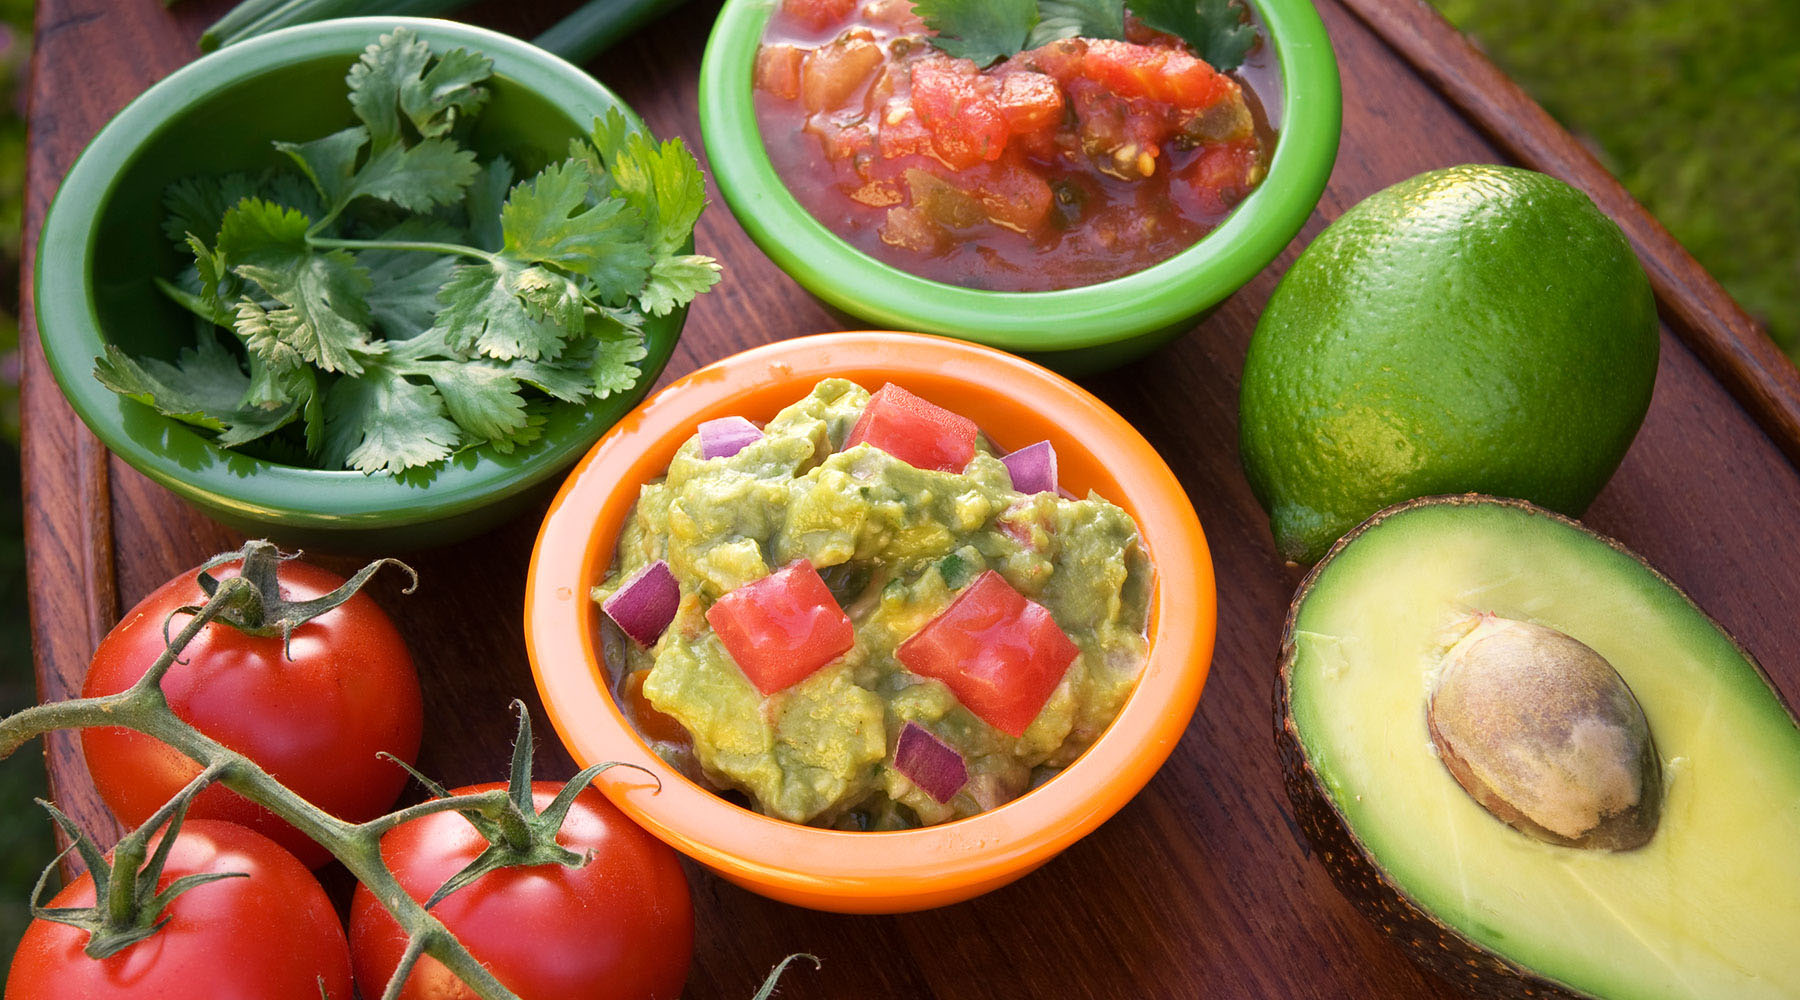 Recipe of the Month: Pico de Gallo and Guacamole